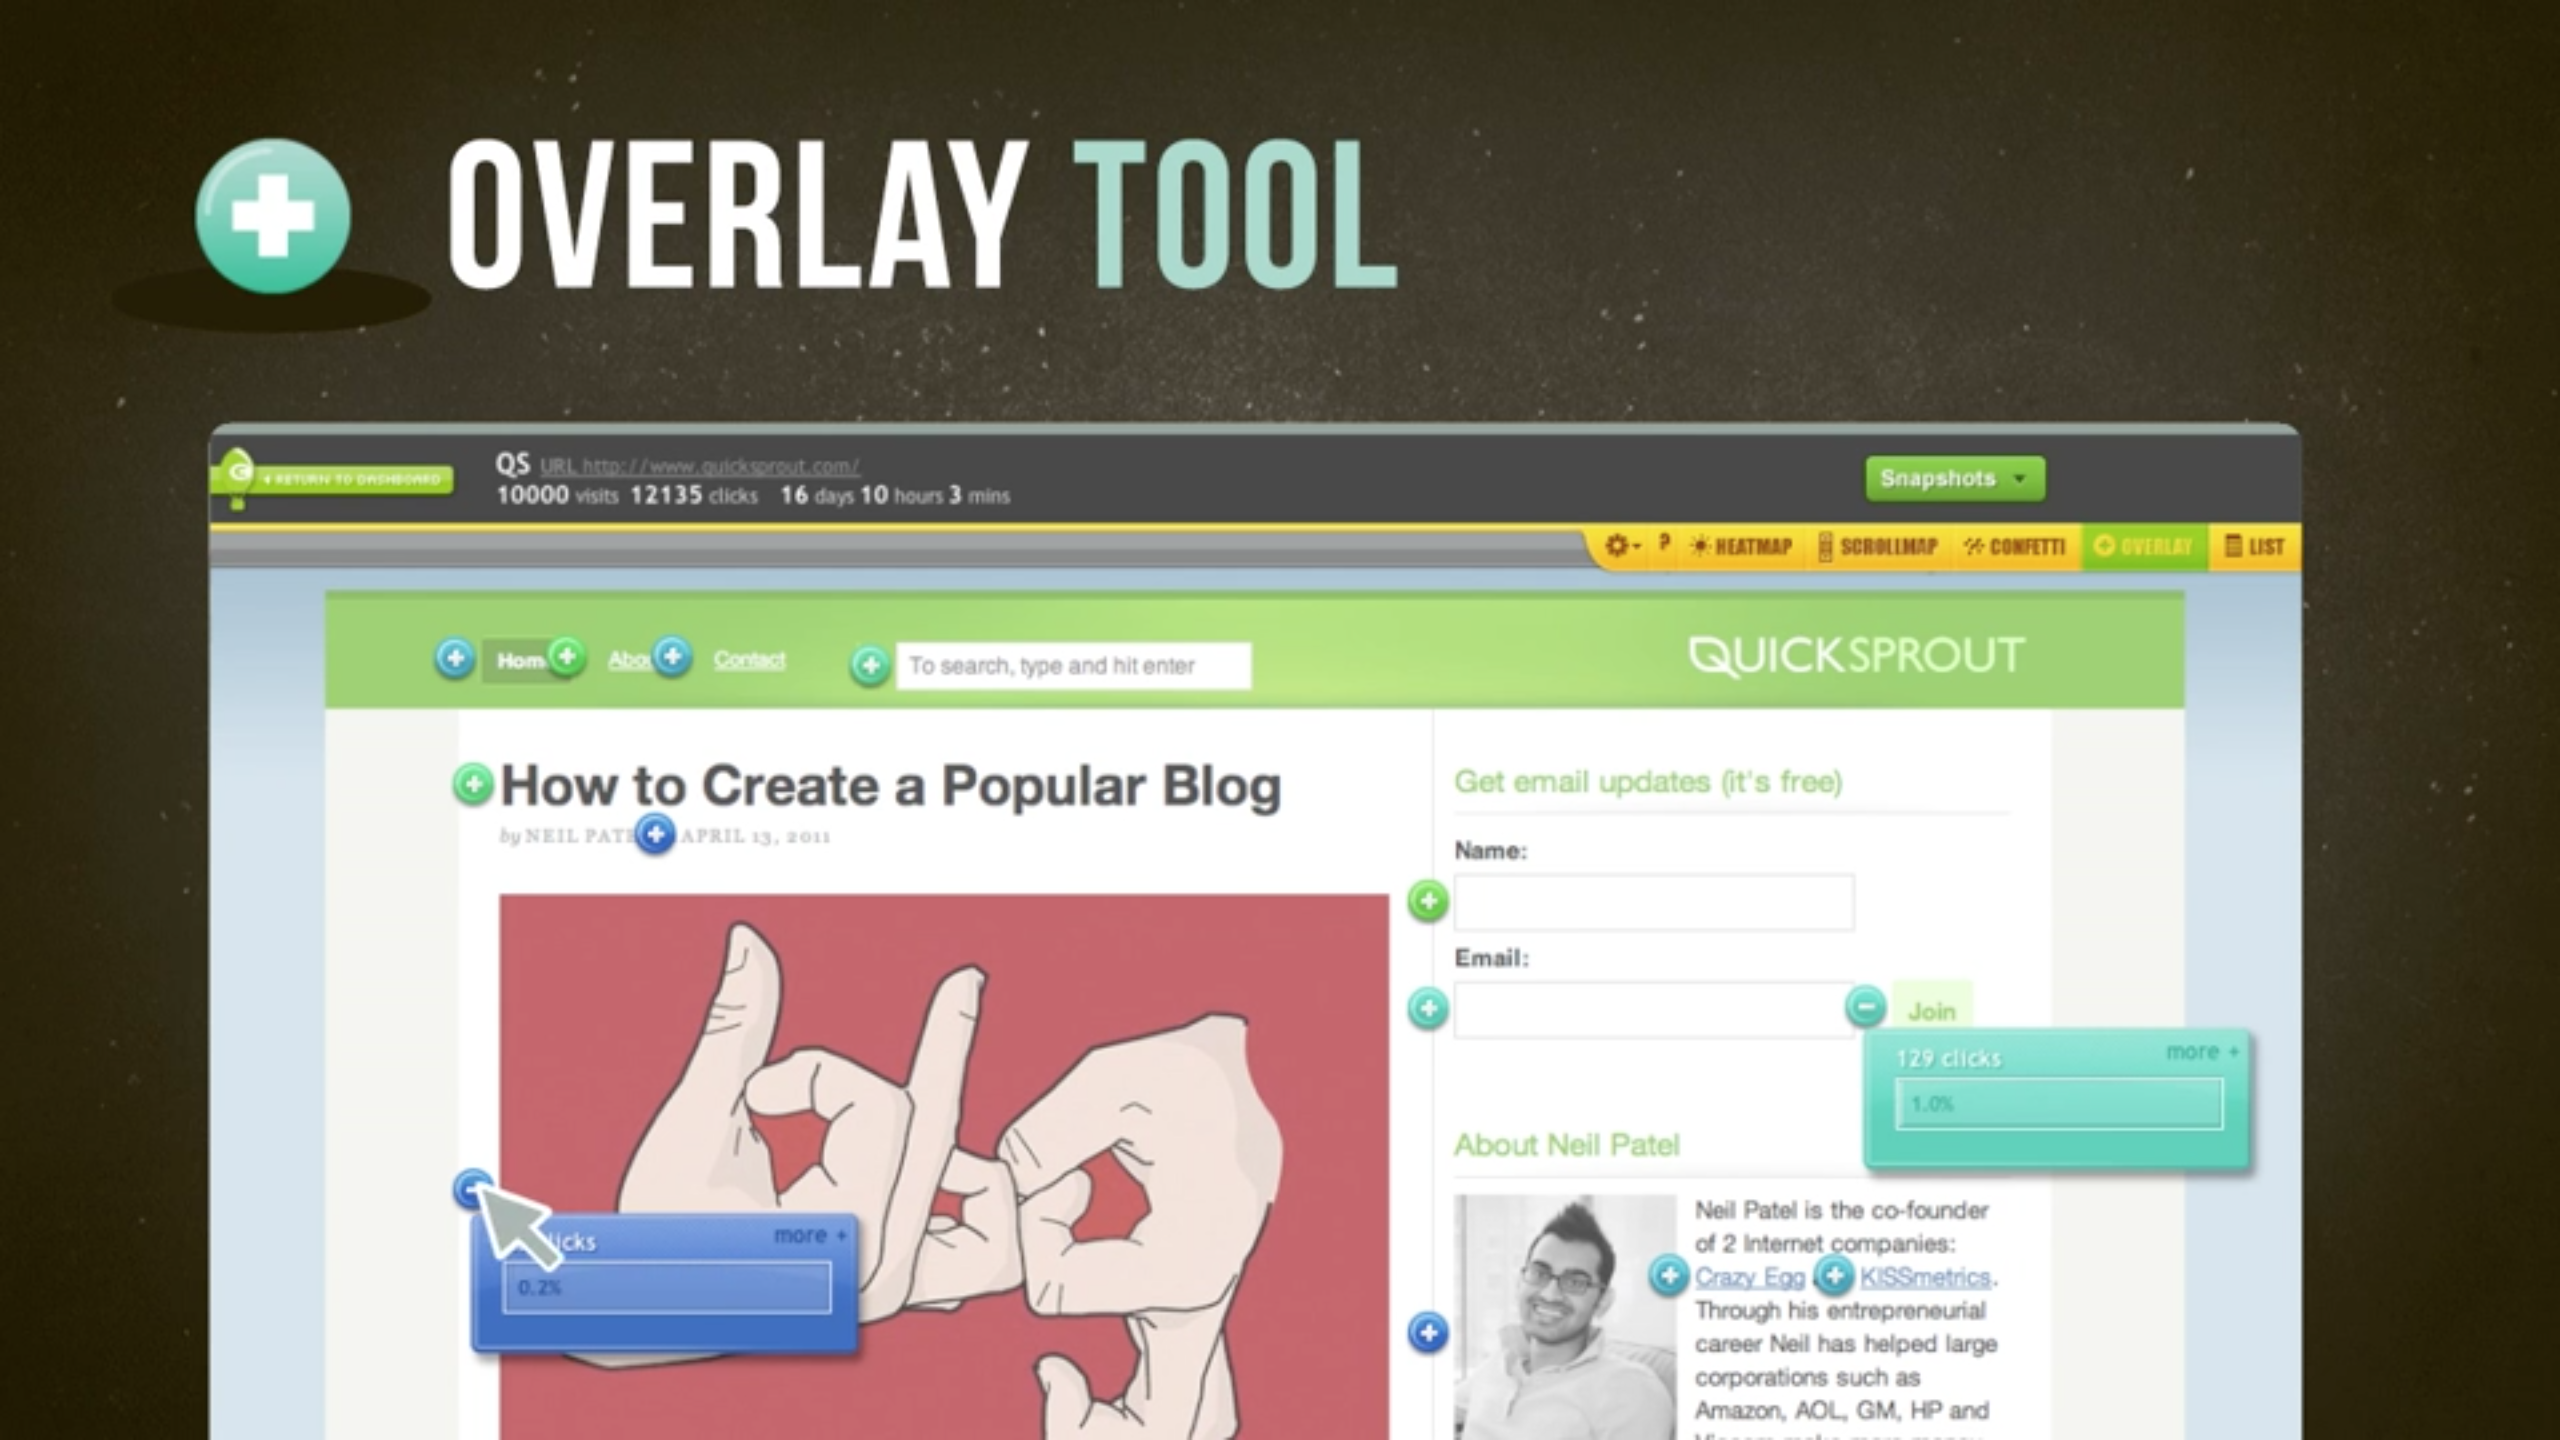 Overlays text with clickable information so teams can see what page elements users clicked on